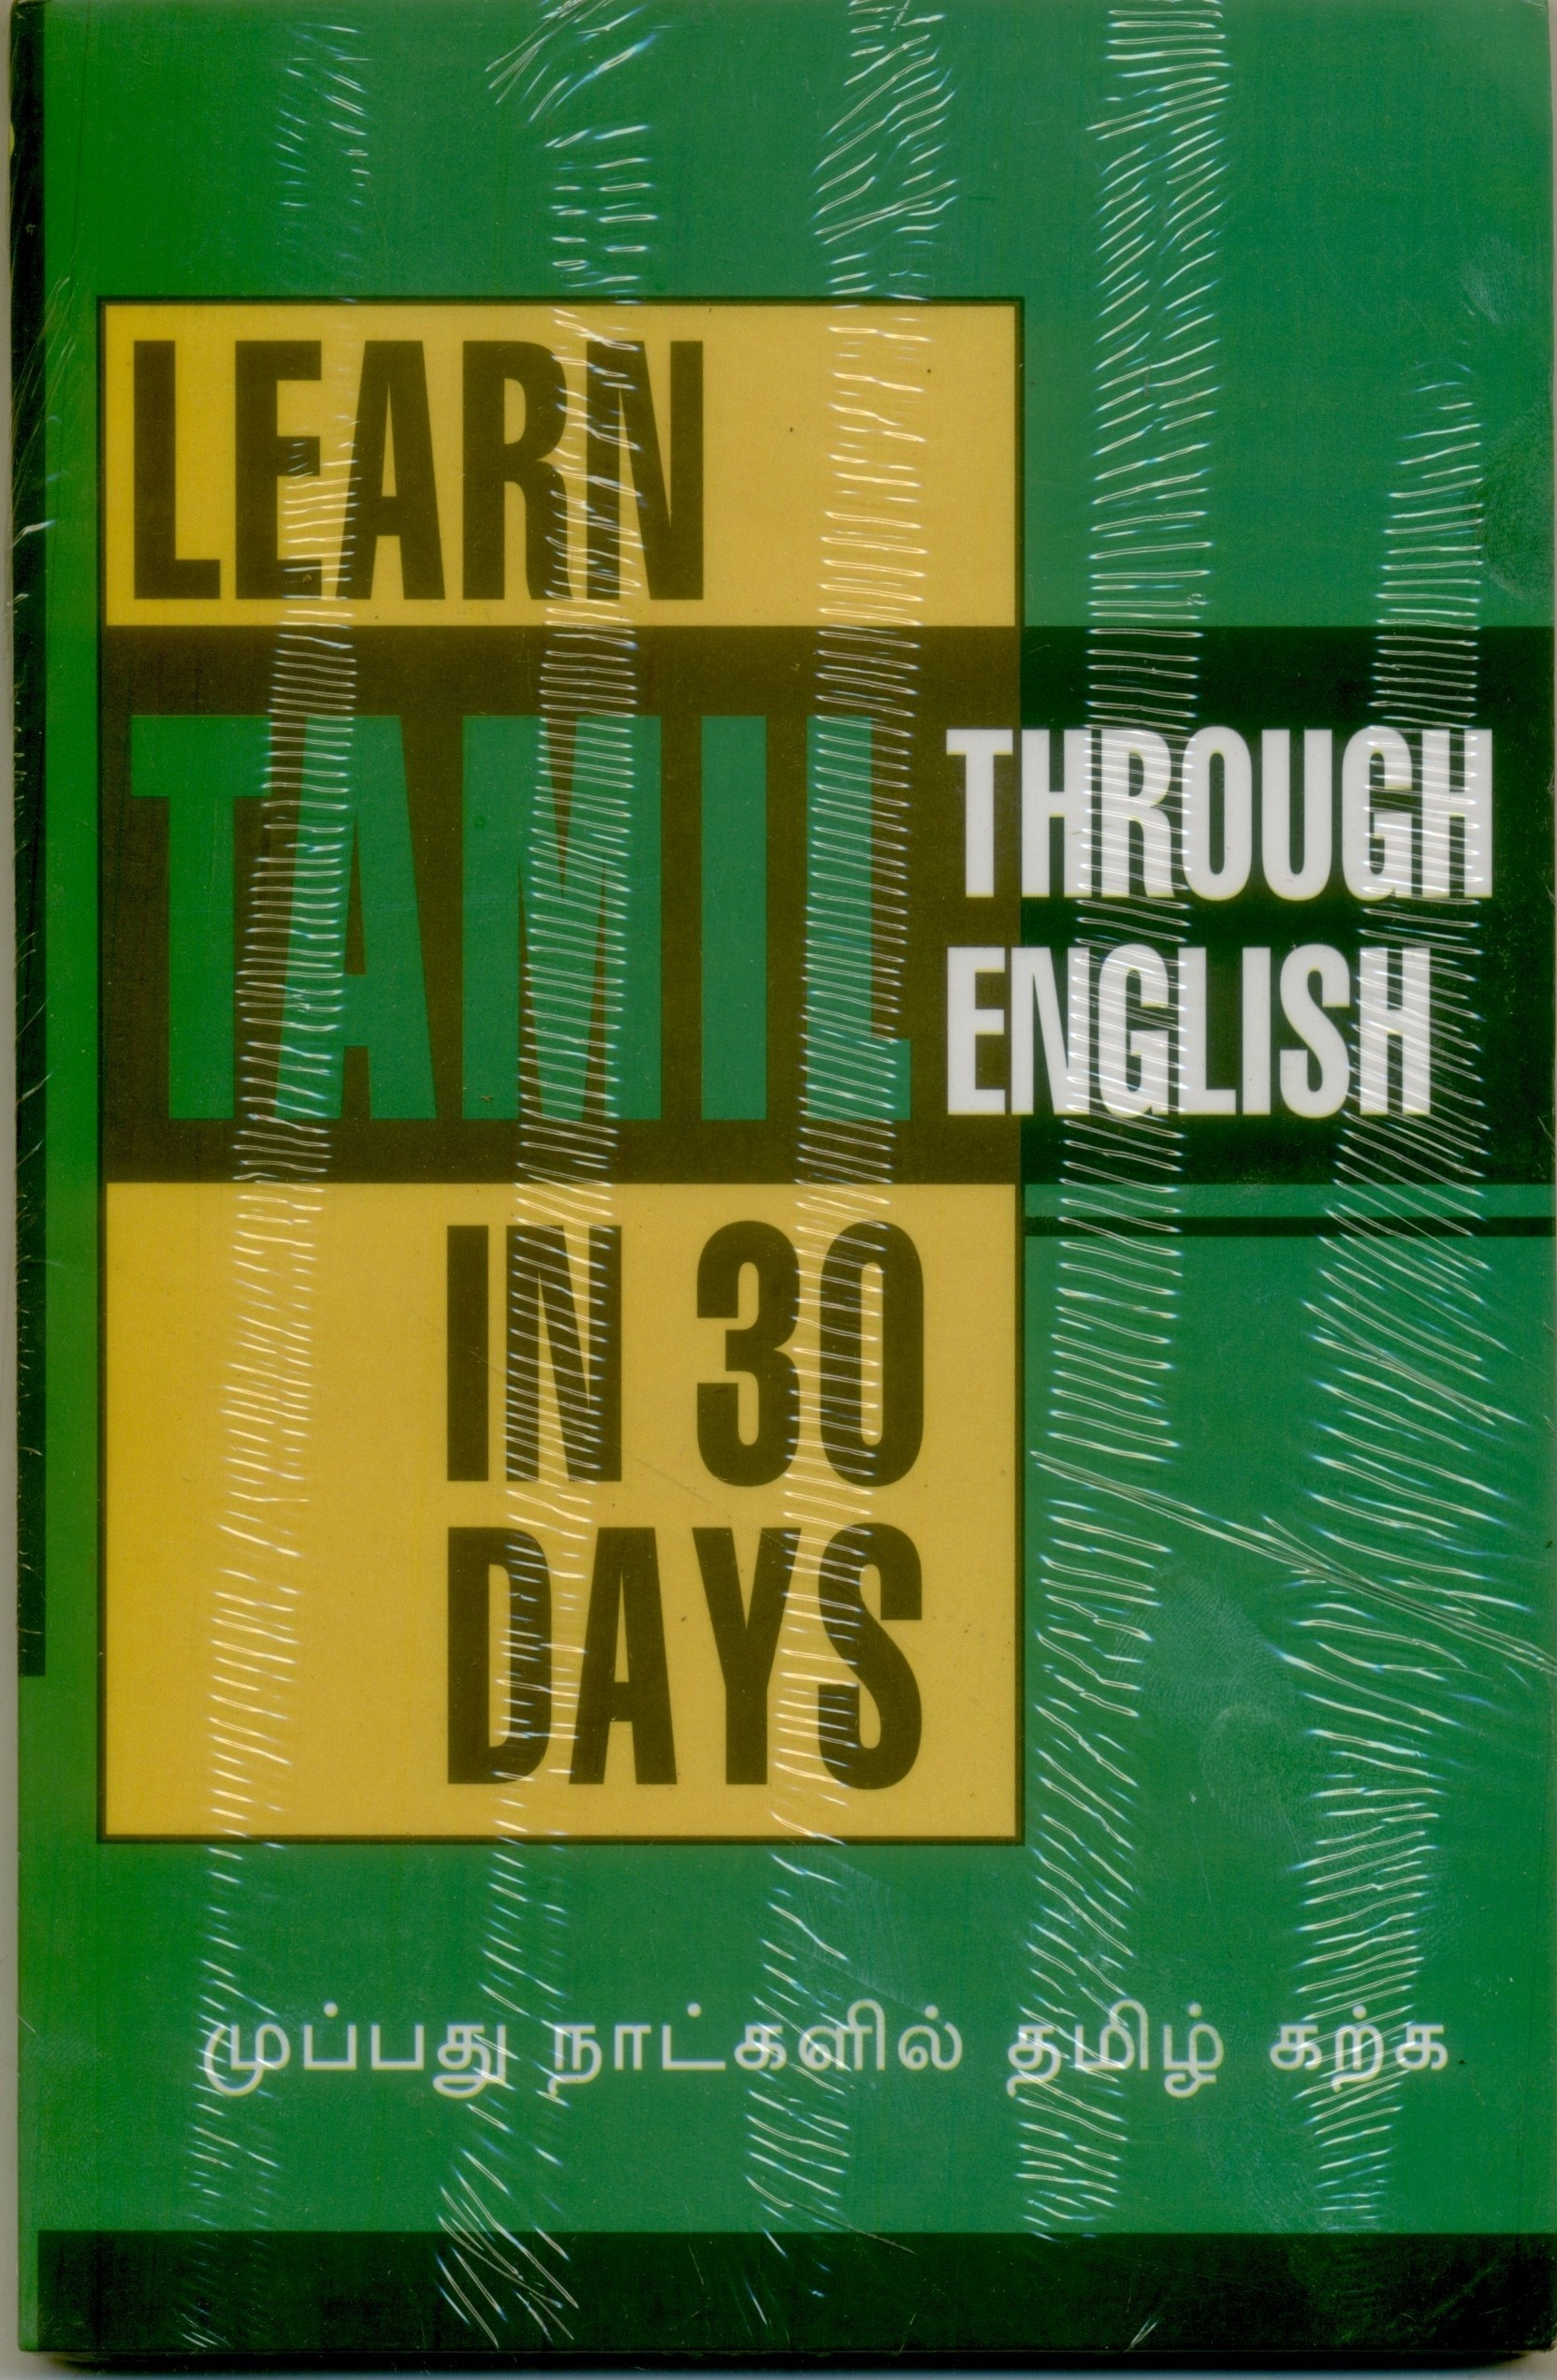 Download learn spoken english through tamil pdf free ...